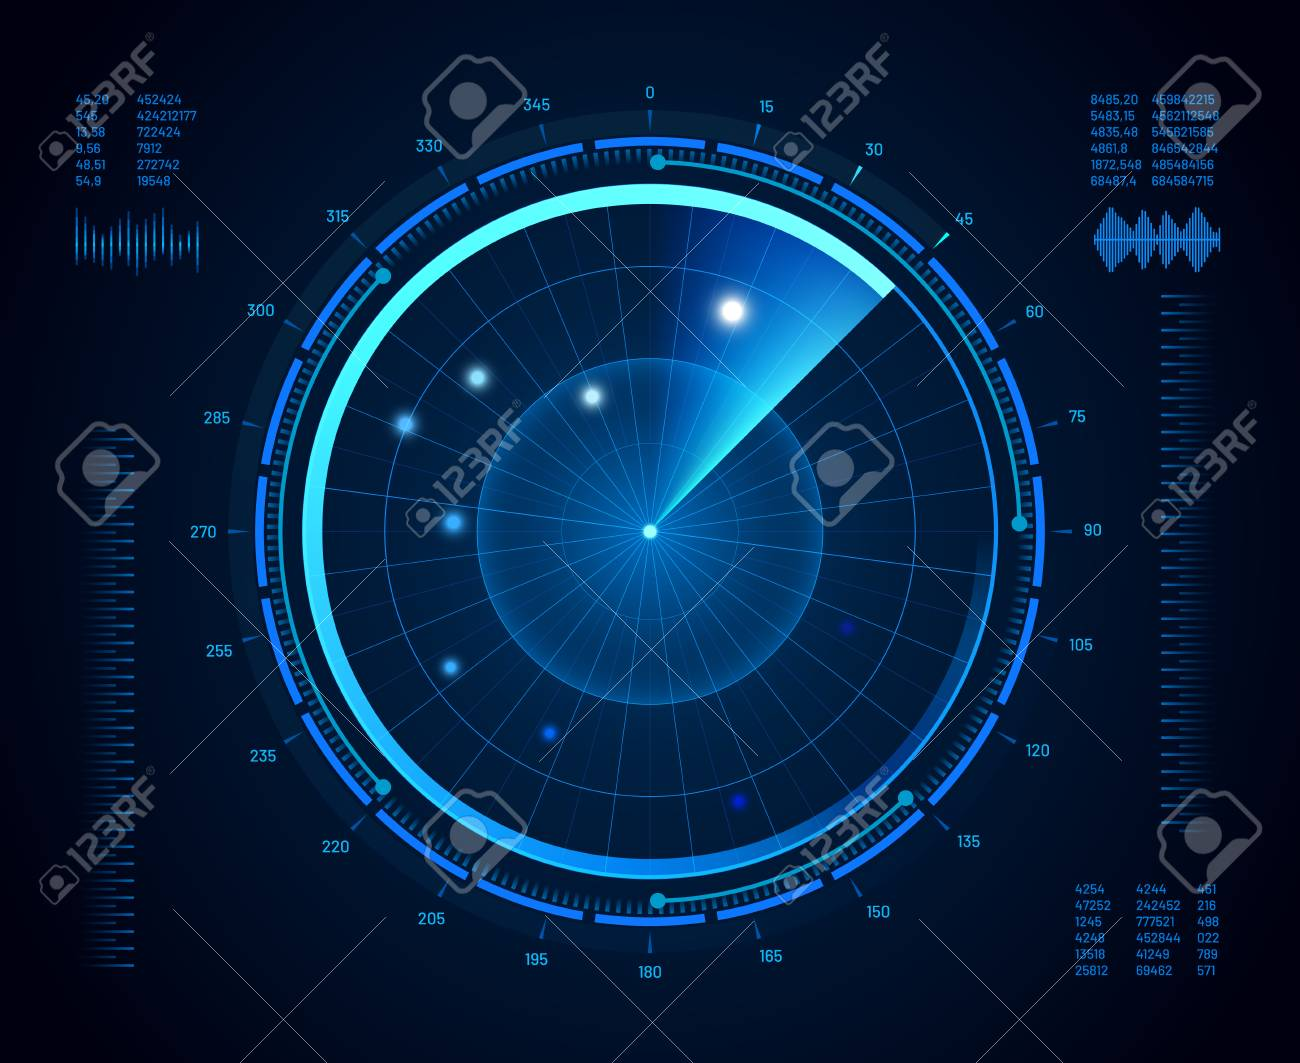 Futuristic radar. Military navigate sonar, army target monitoring screen and radar vision interface map or navy submarine satellite display interface. Aircraft compass vector isolated concept - 126772278